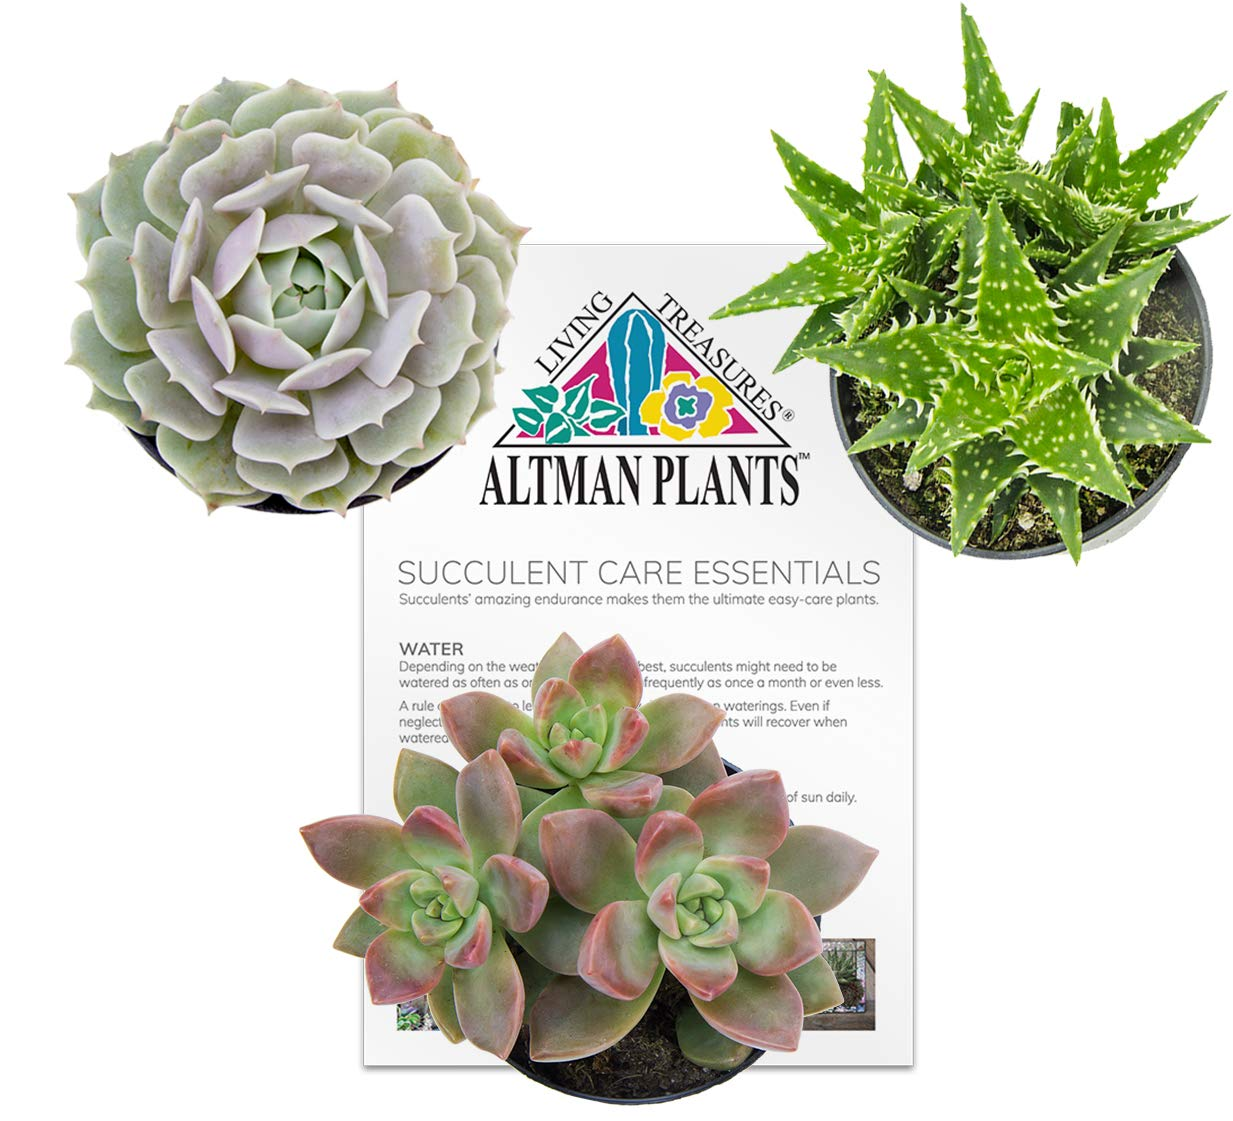 Altman Plants Assorted Live Succulents All Time Favorite Collection Large plants for DIY planters and terrariums, 3.5'', 3 Pack